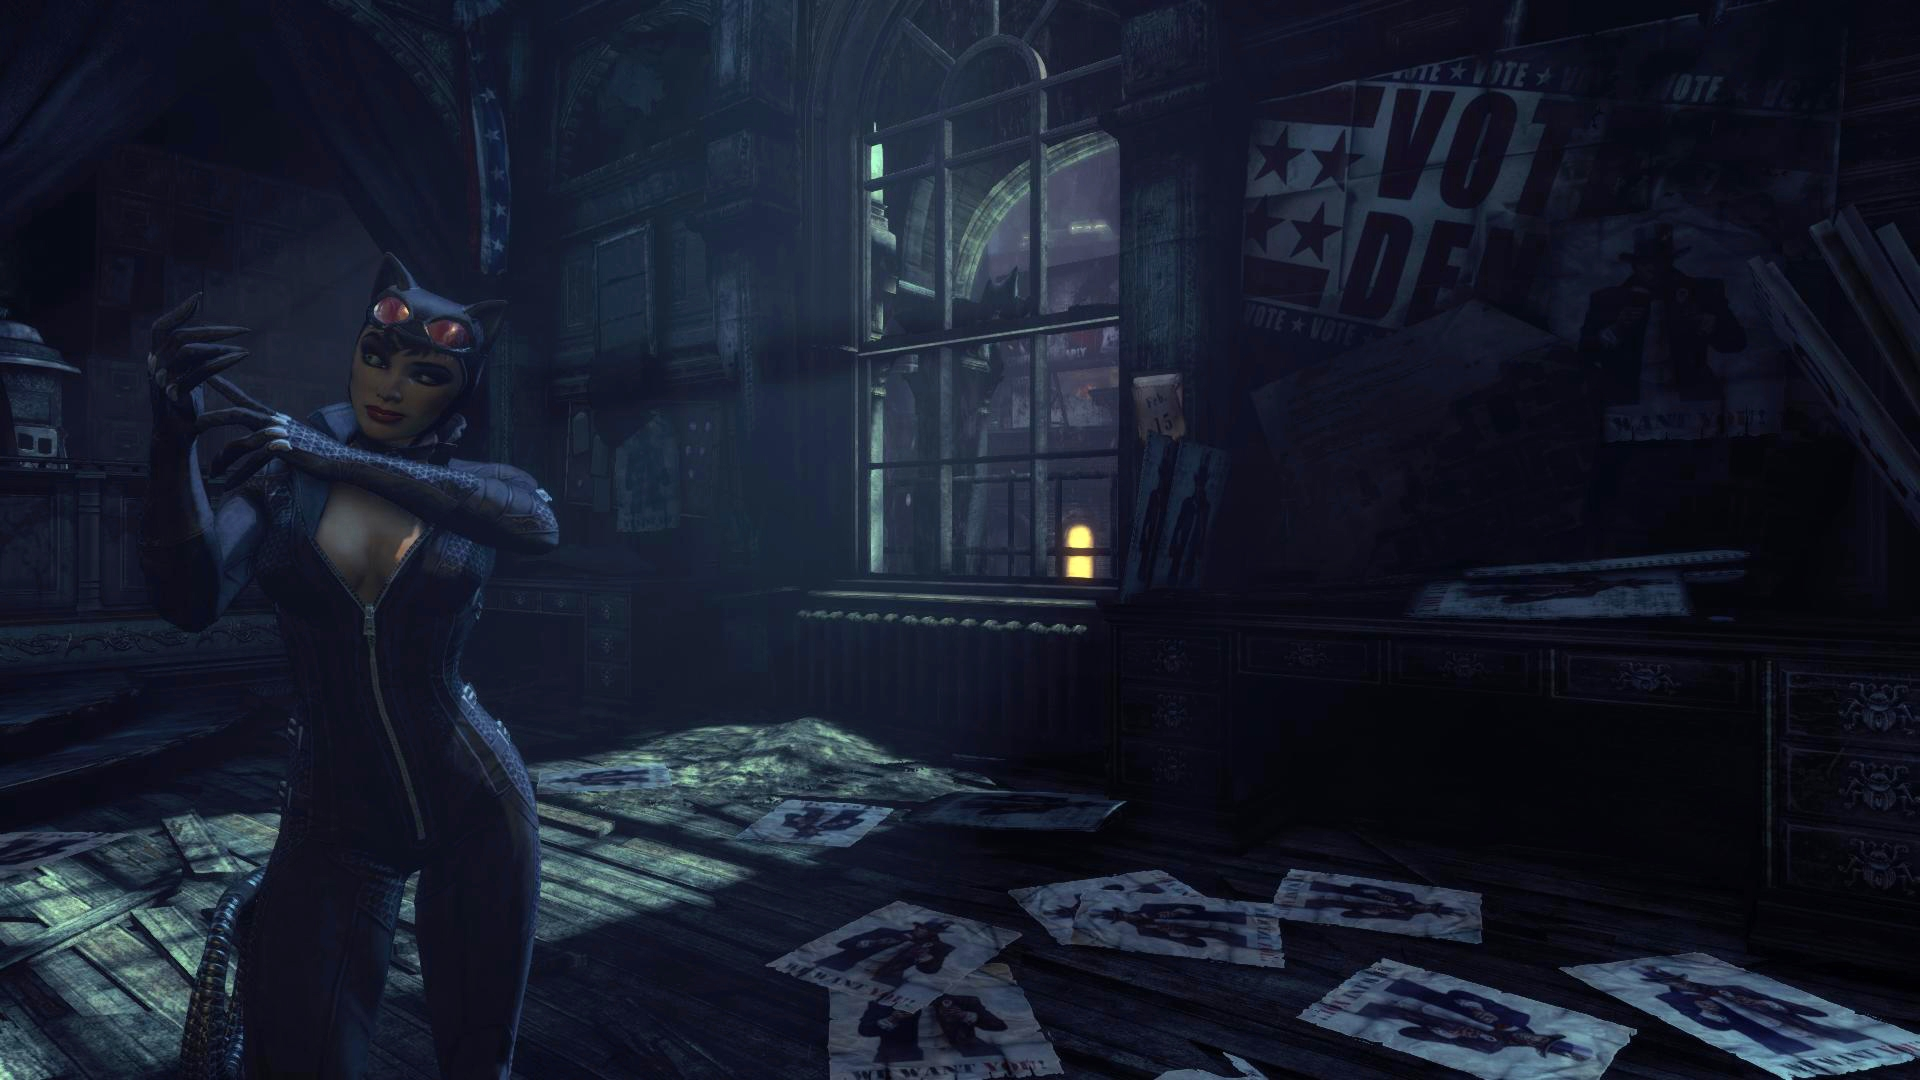 Arkham city cat woman mod porn scenes